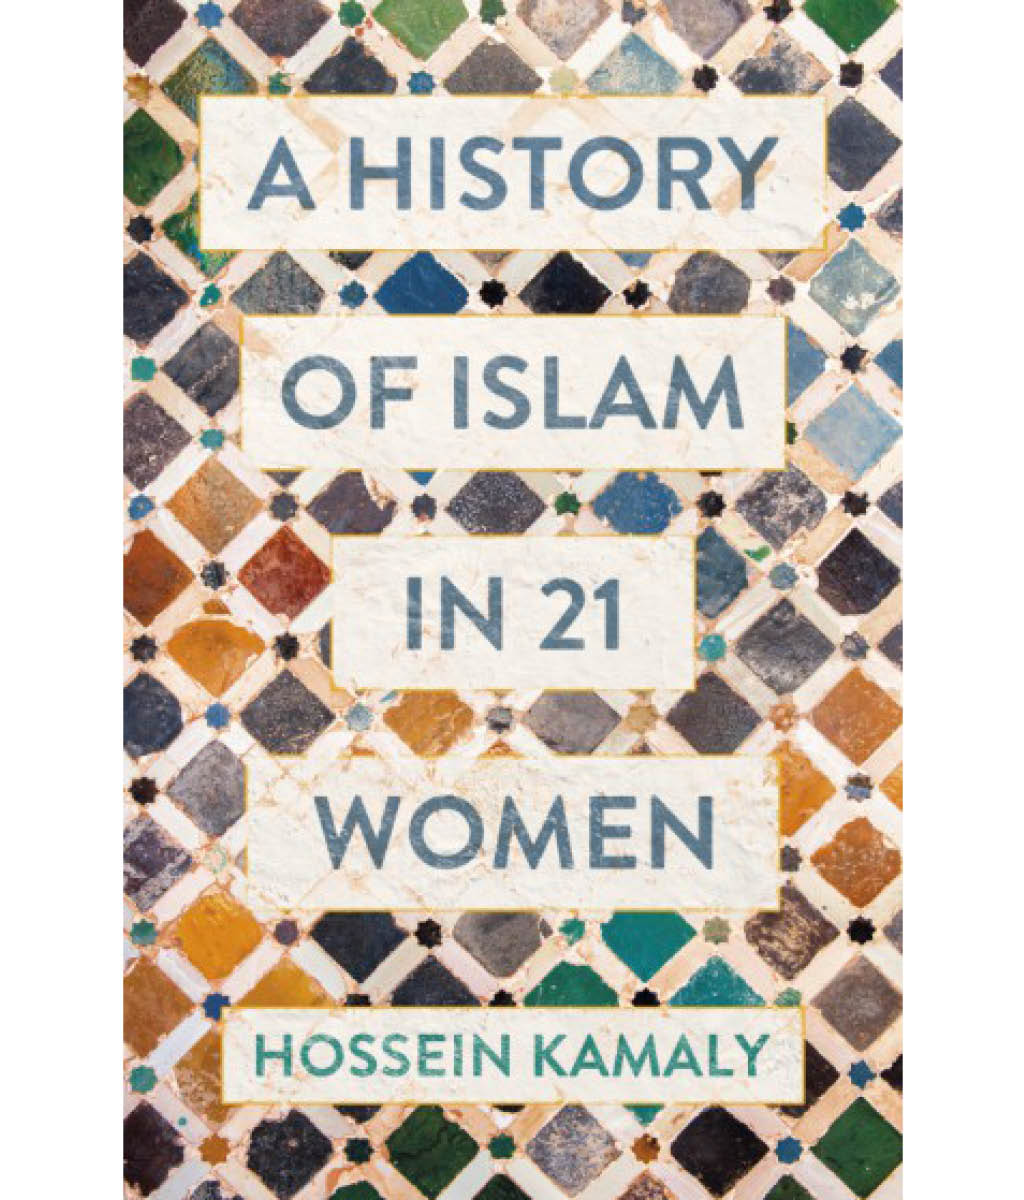 A history of Islam in 21 Women Hoseein Kamaly